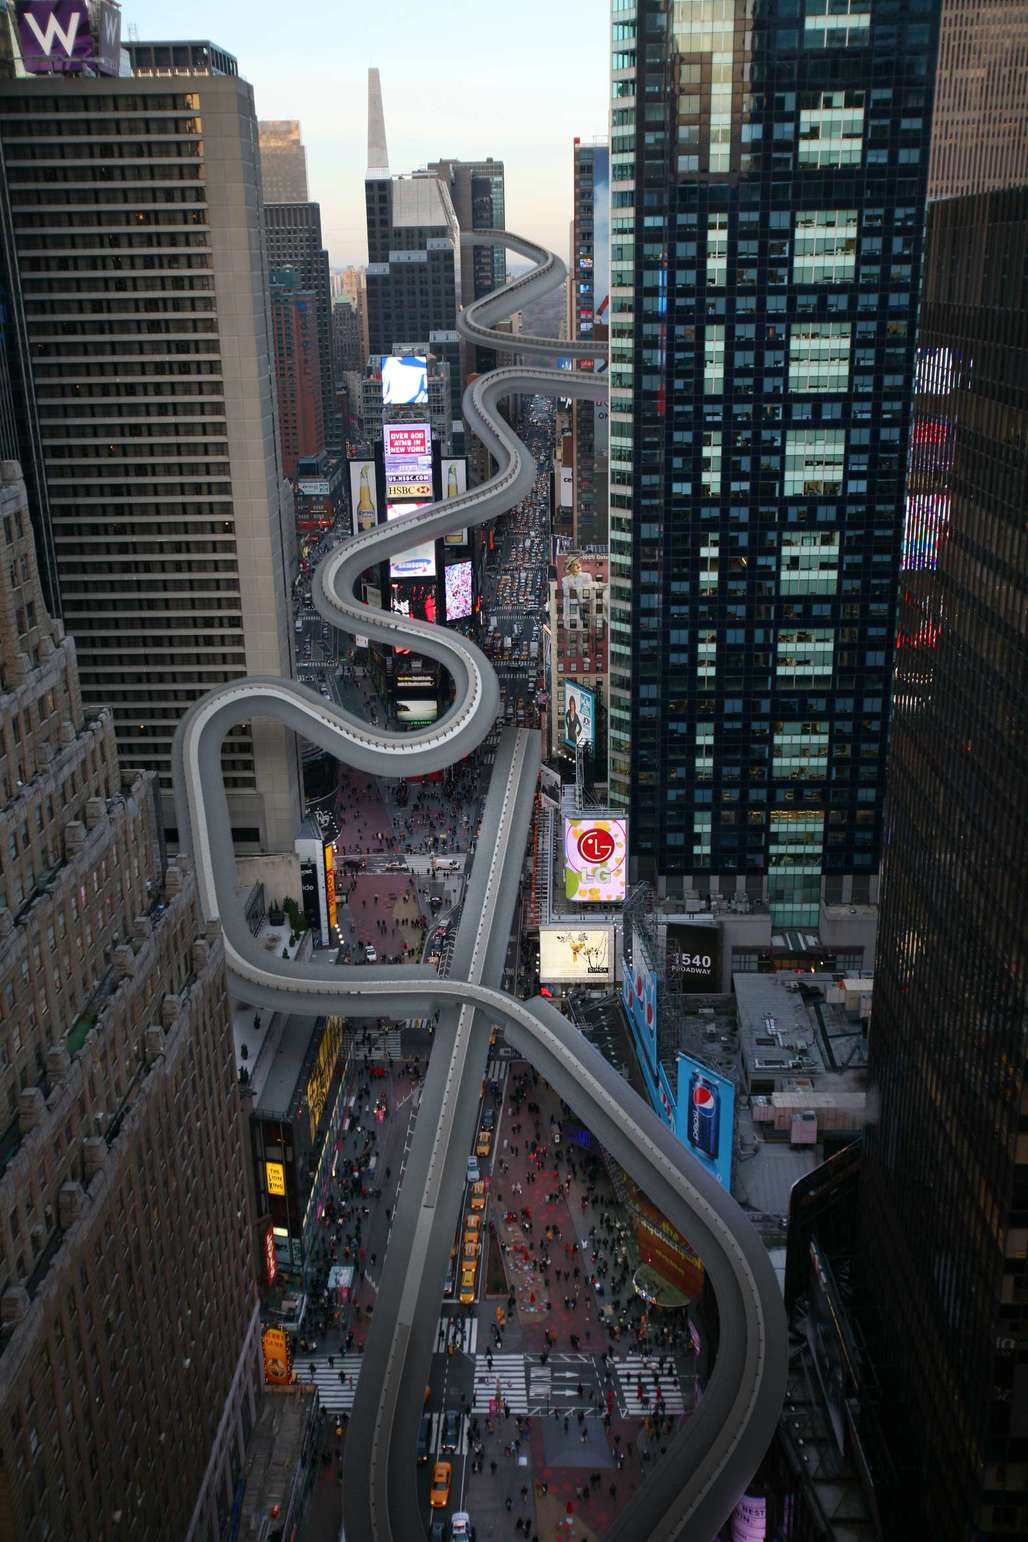 Luge, Bobsled and Skeleton: Racers might begin their starting sprints 40 stories up and several blocks north of Times Square for the run down the city's own version of the Sanki Sliding Center's track, finishing in a big turn on the plaza in front of the Armed Services Recruiting Center. Image via nytimes.